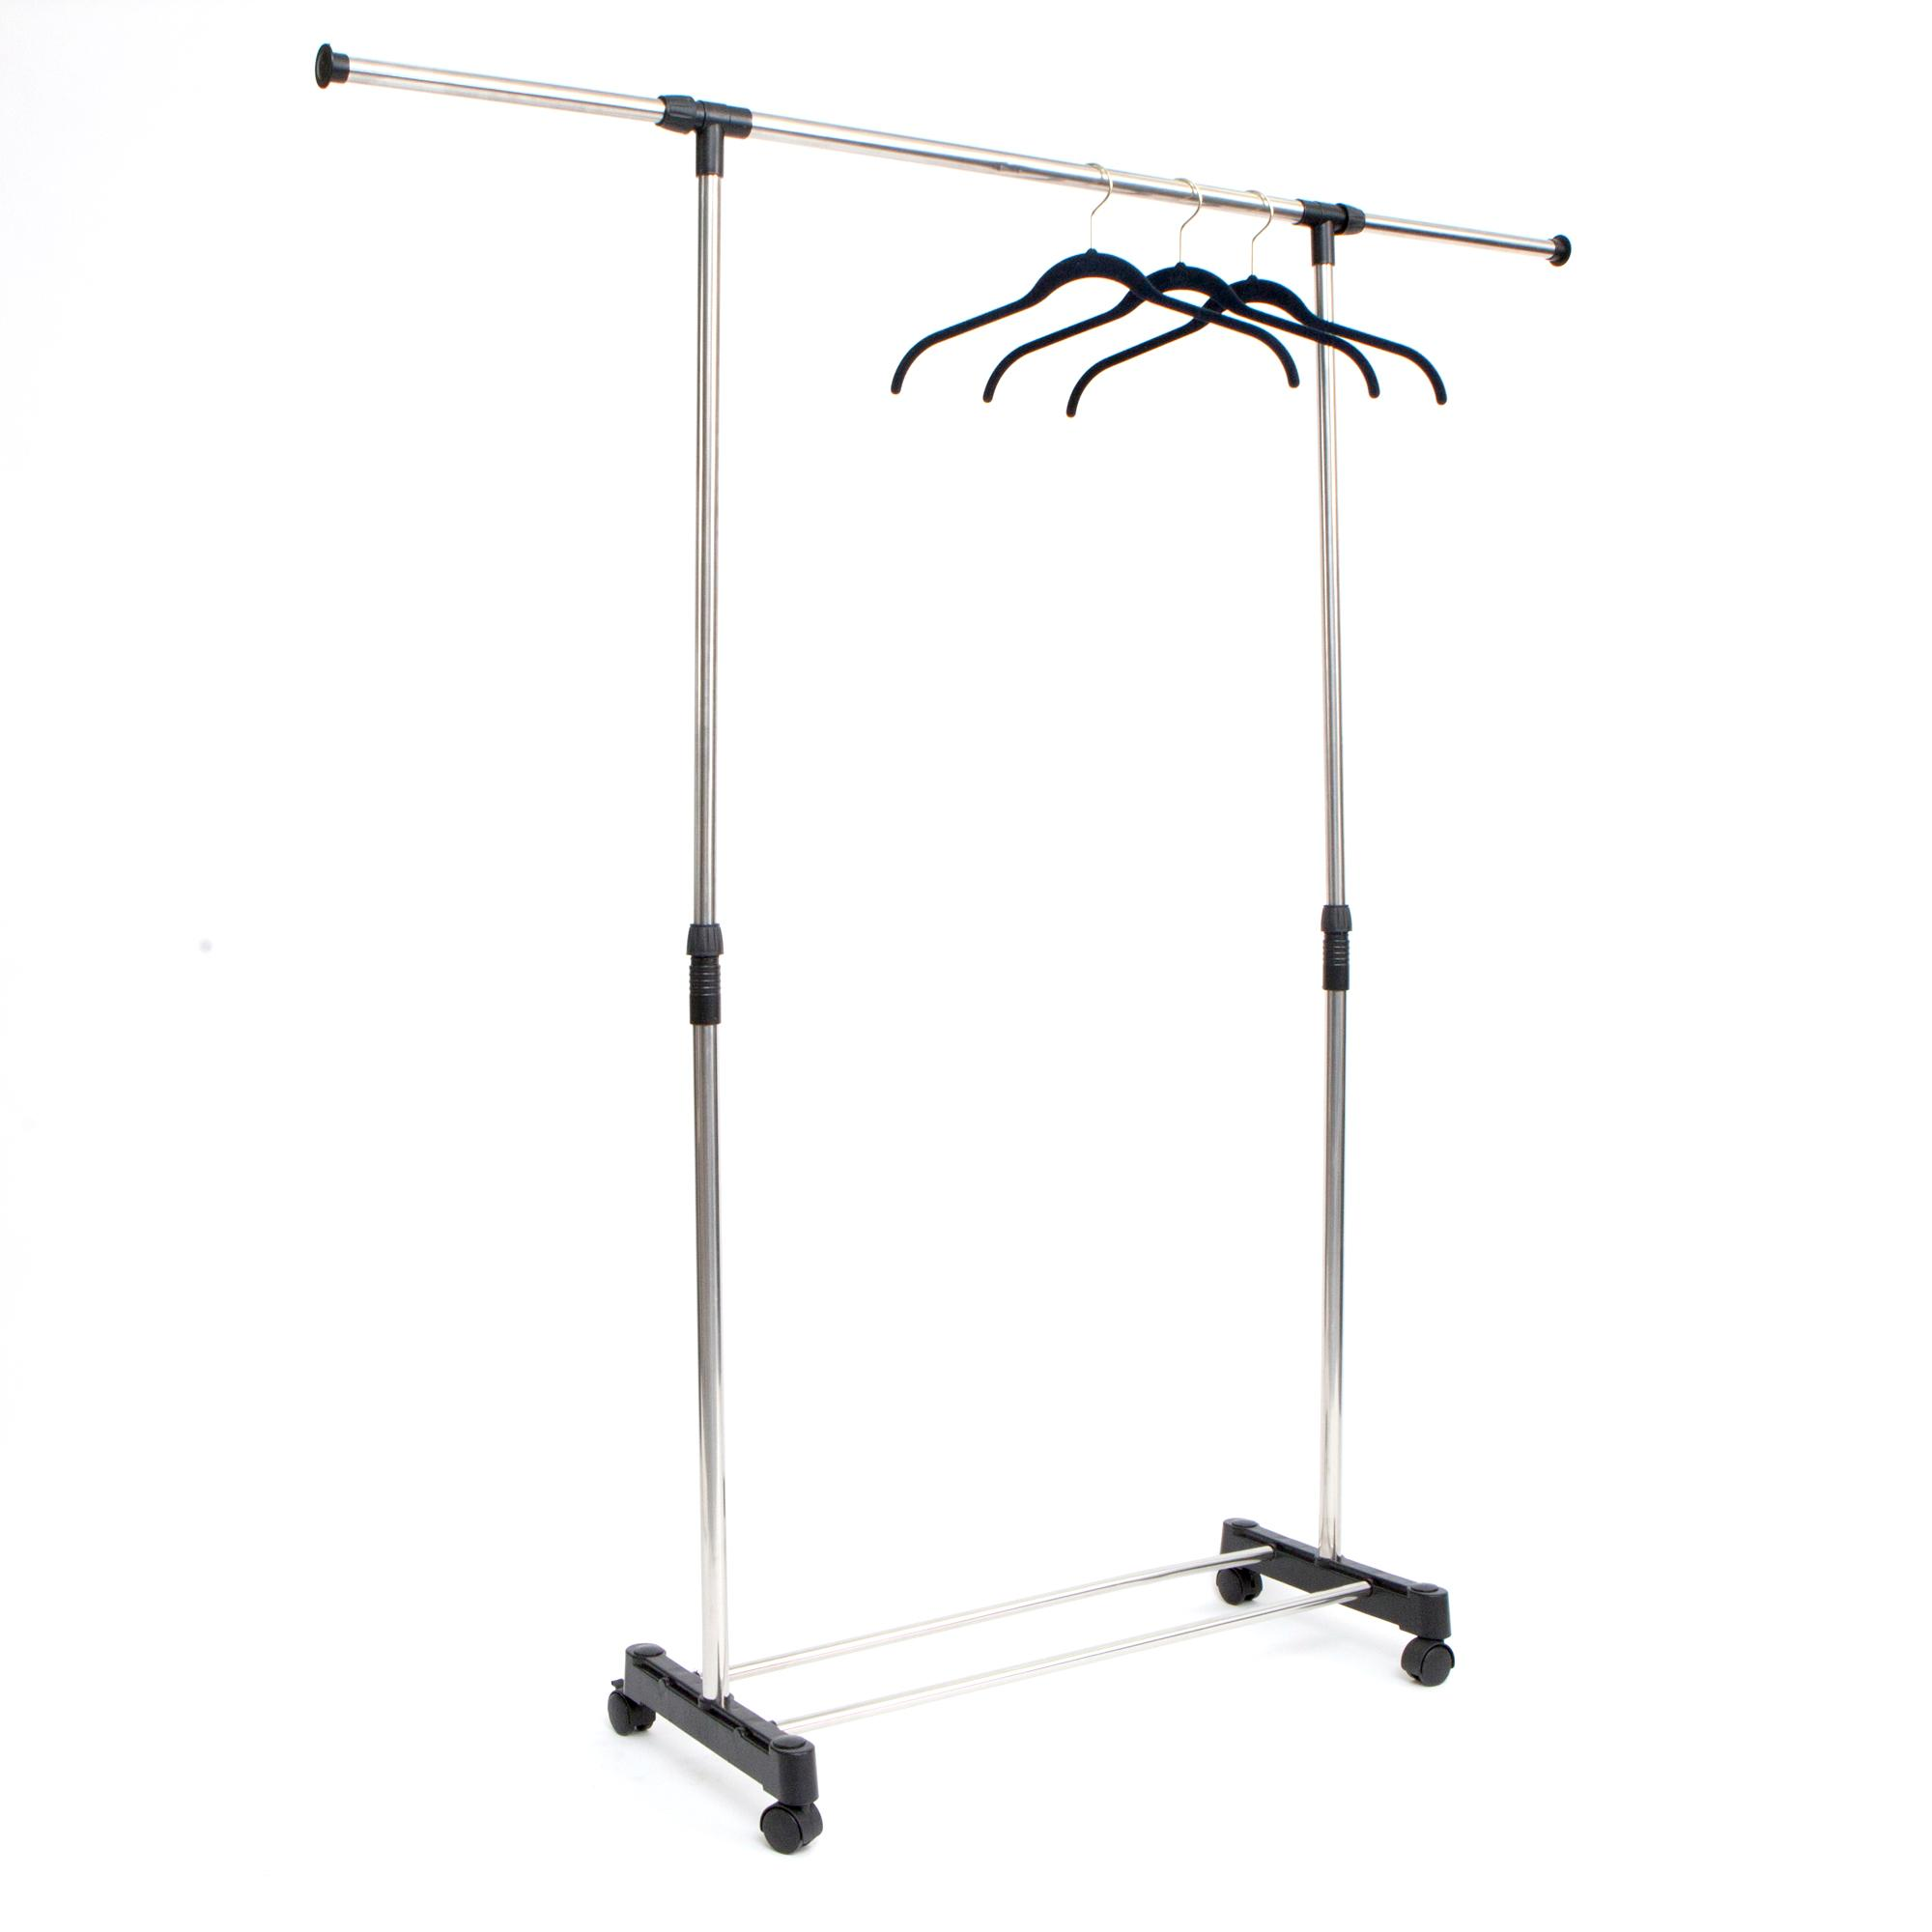 Stainless Steel, Adjustable, Garment Rack, Chrome Finish, Extend,  Extendable Height,. View Larger · Stainless Steel, Adjustable, Garment Rack  ...